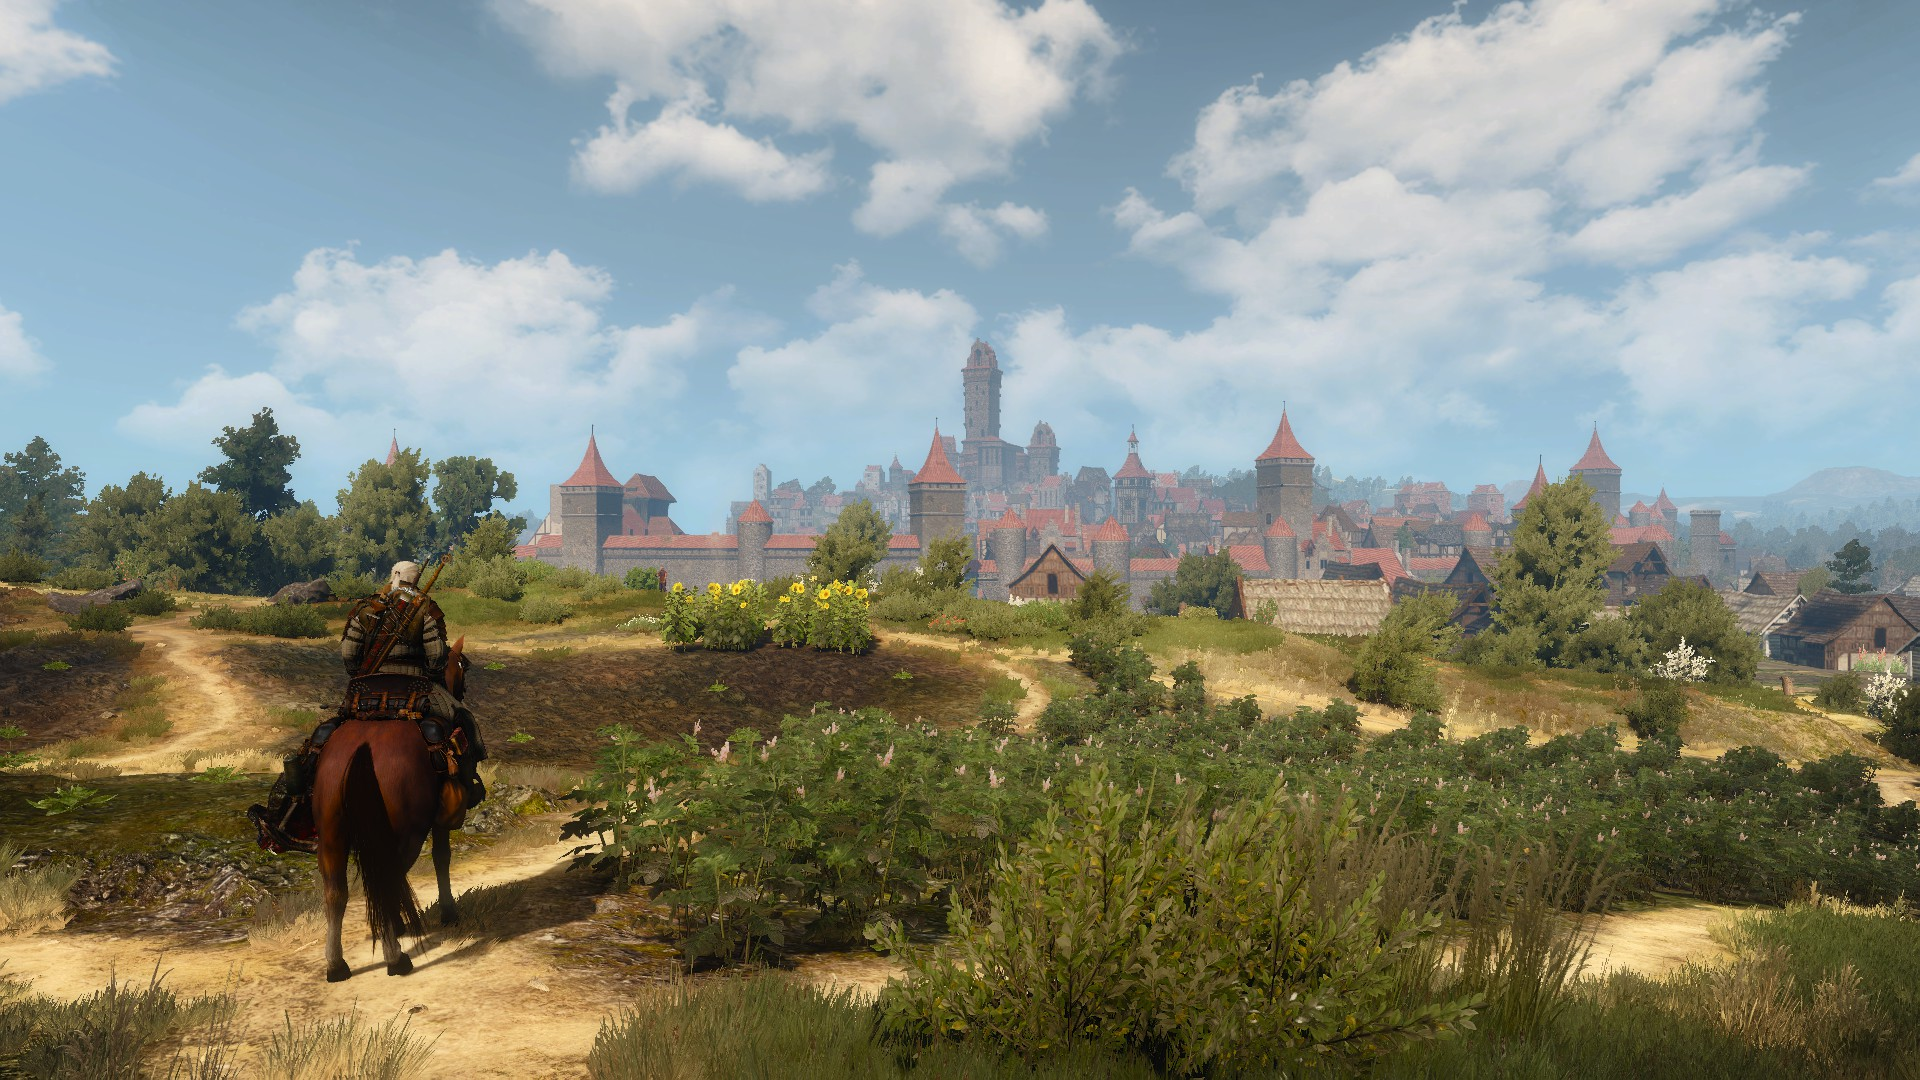 Outskirts-of-Novigrad-The-Witcher-1920x1080-OC-Need-iPhone-S-Plus-Backgroun-wallpaper-wpc5807889